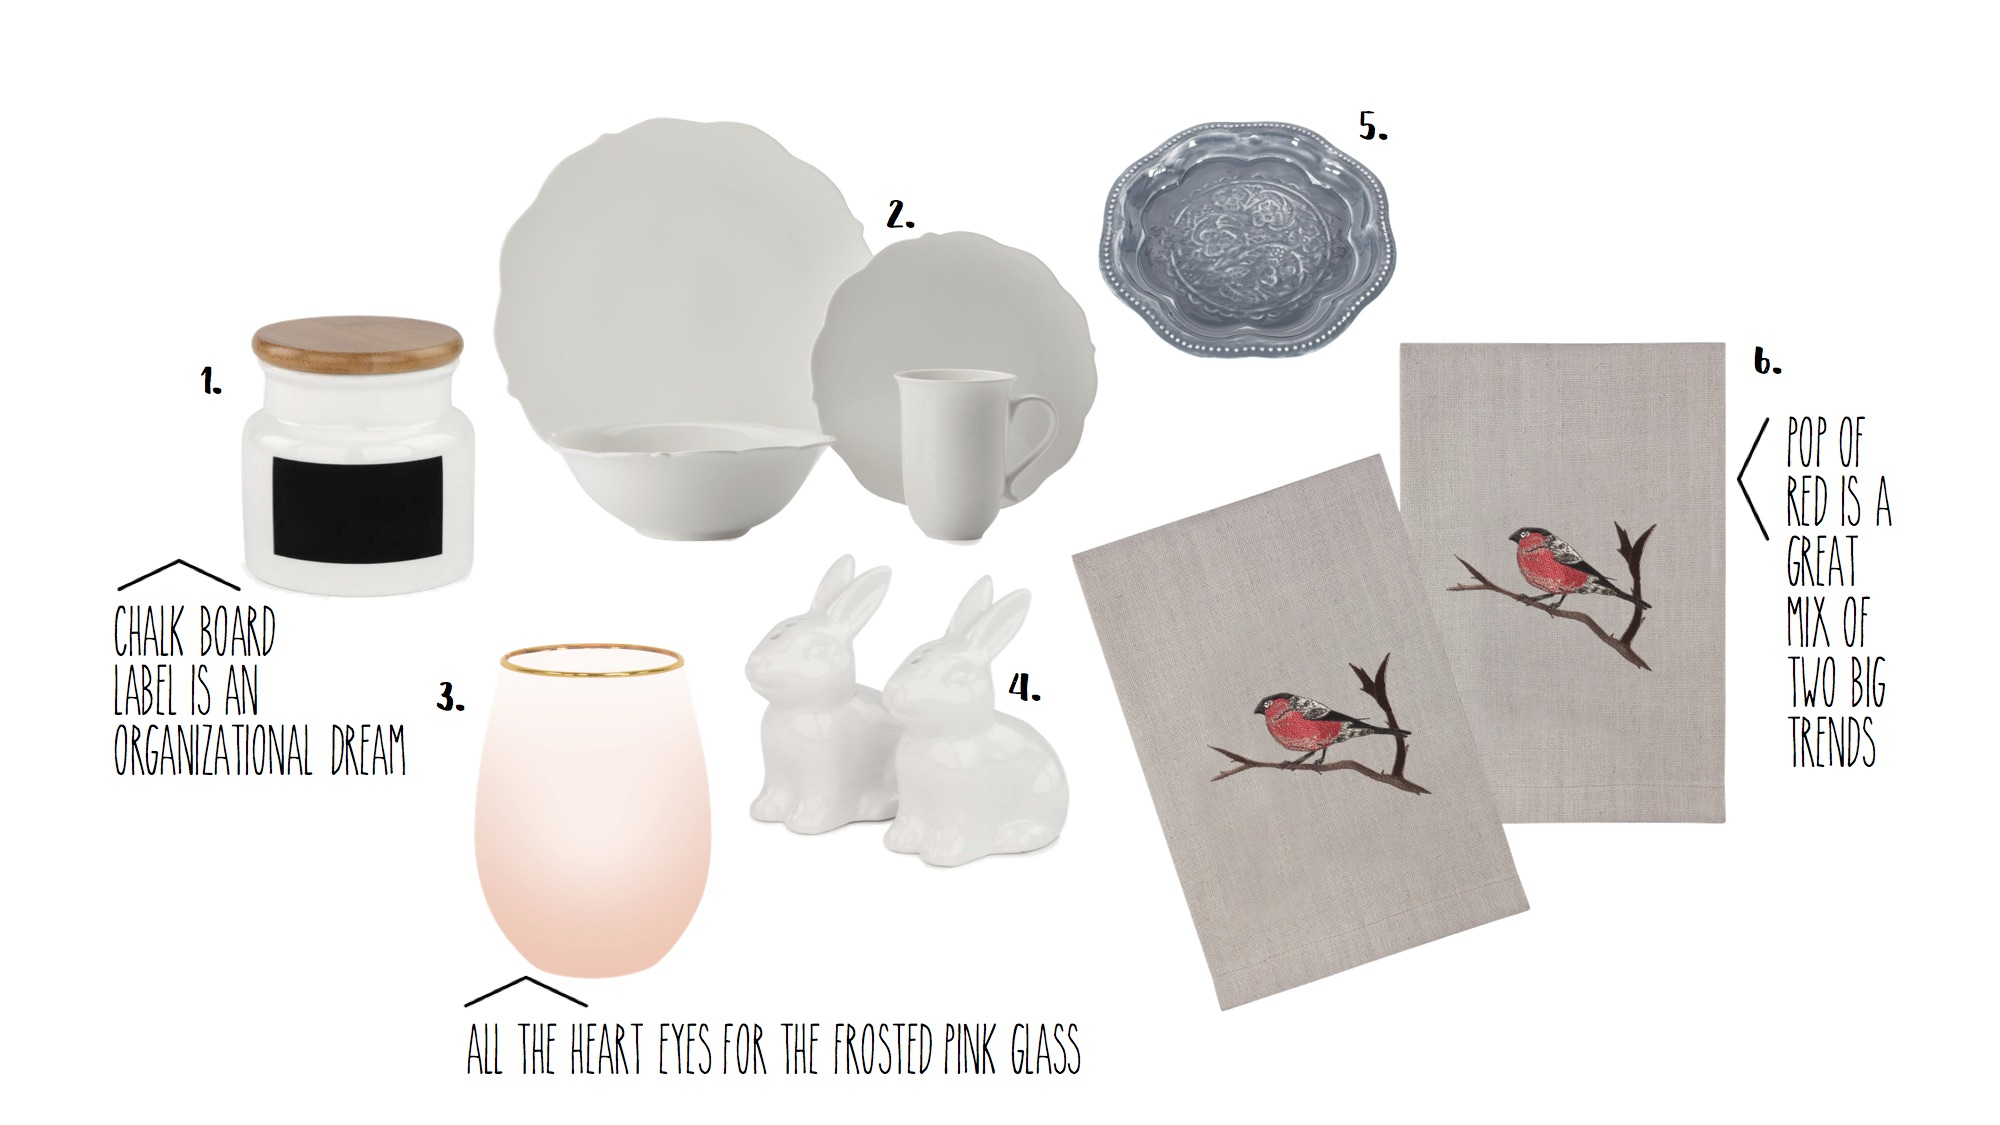 1.  Chalk Labeled Canister - $ 14.95  2.  Scalloped Edge Plate Set - $199.95 (set of 4)  3.  Pink Frosted Glass - 9.95  4.  Bunny Salt and Pepper Shakers - $9.95  5.  Grey Plate - 17.95  6.  Bird Hand Towels - $44.95